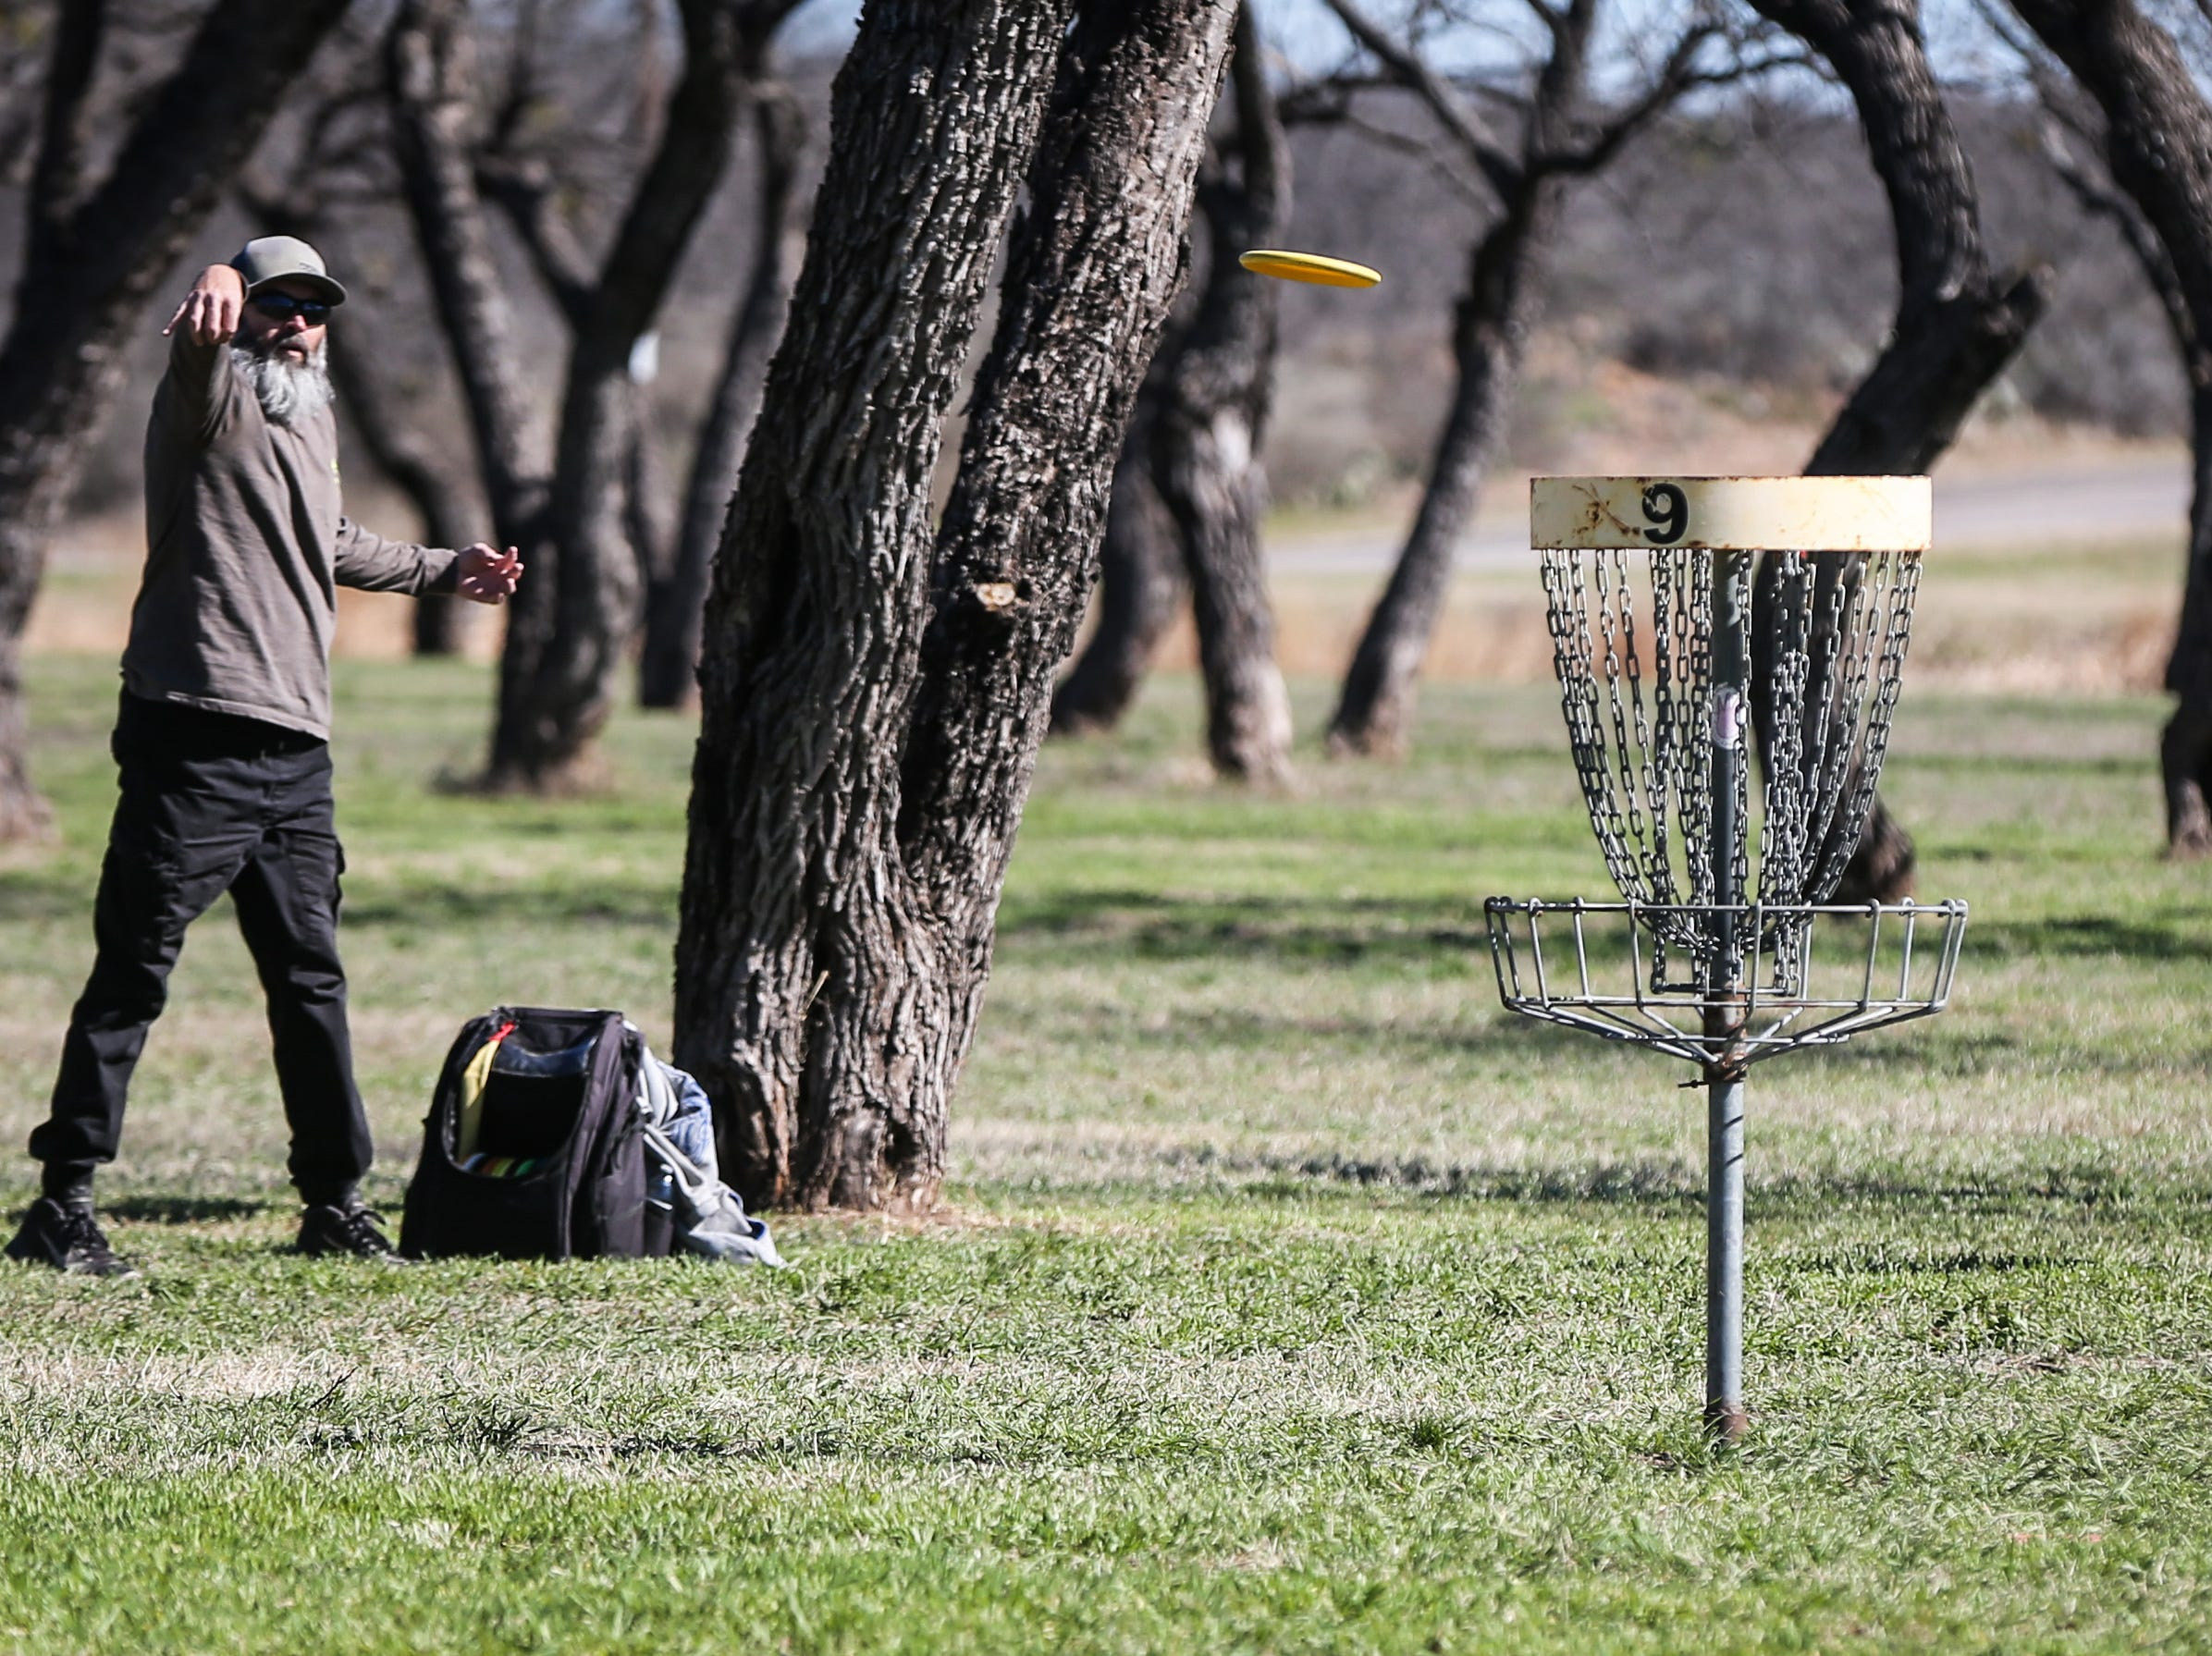 Dave Morgan throws a disc during the Crush on the Concho tournament Saturday, March 9, 2019, at Middle Concho Park.